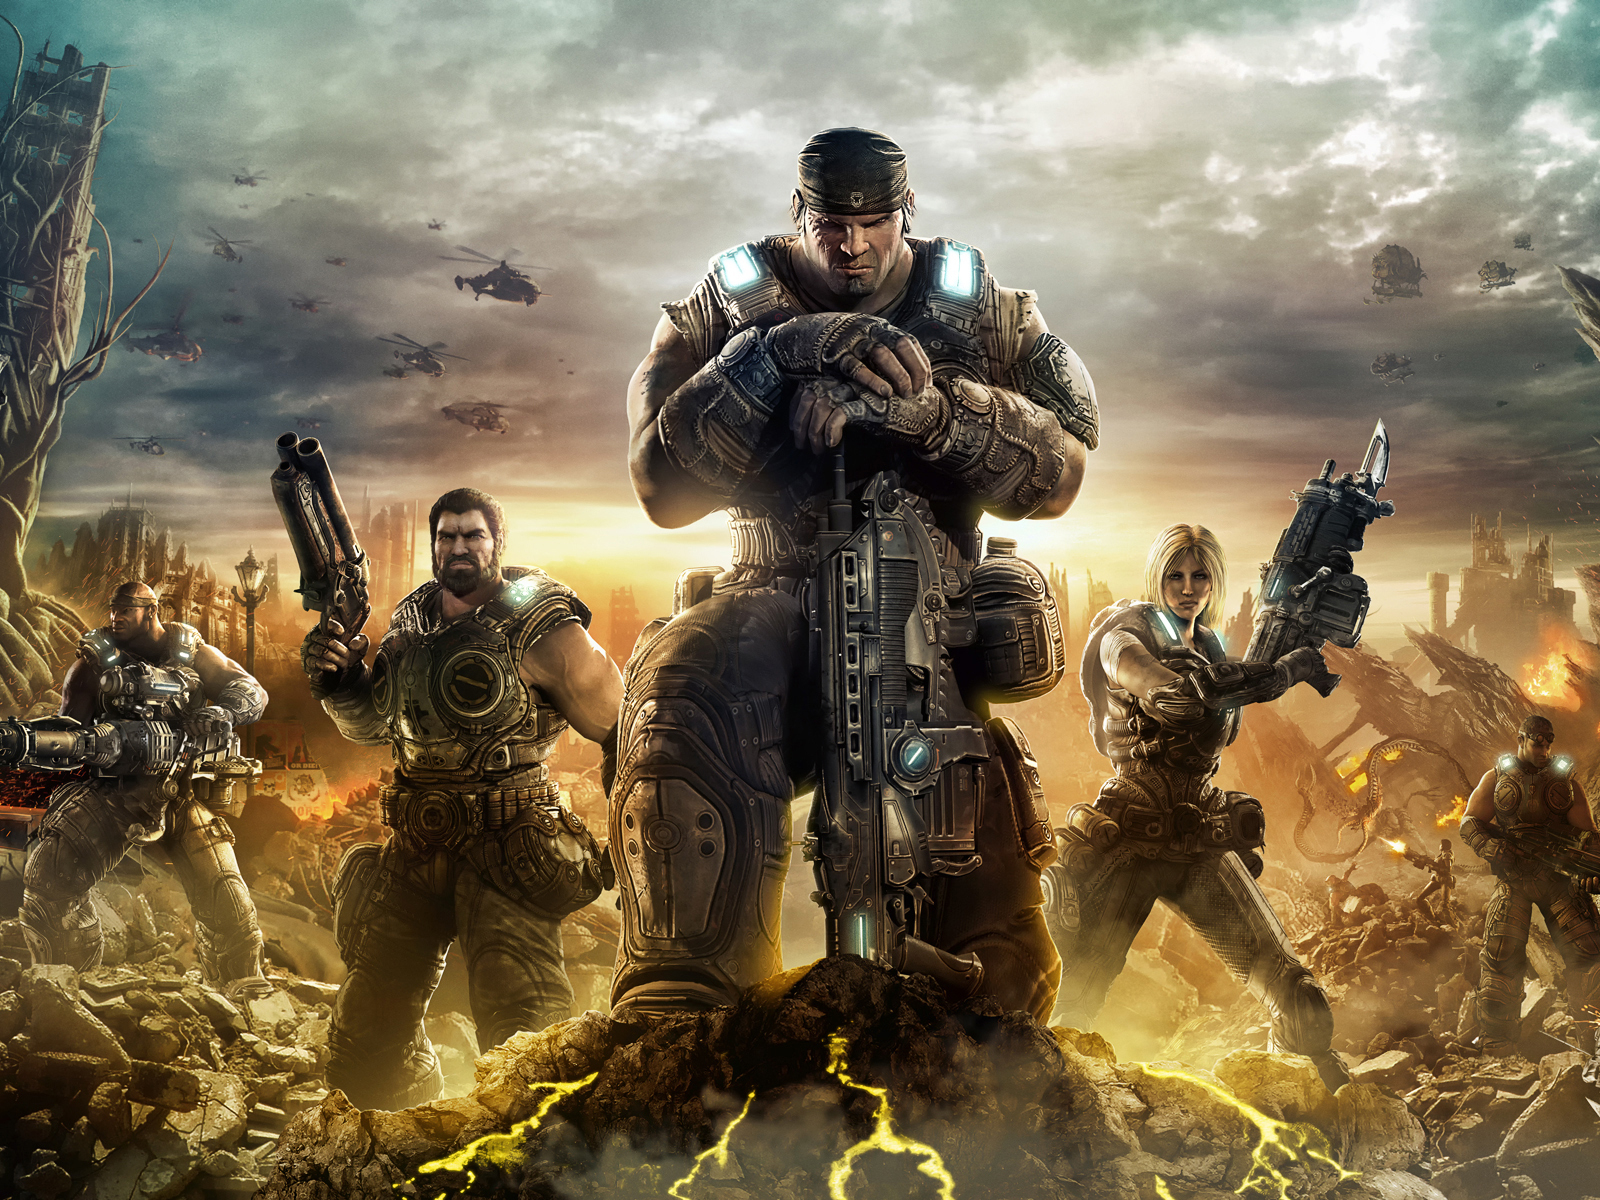 1600x1200 Gears of War 3